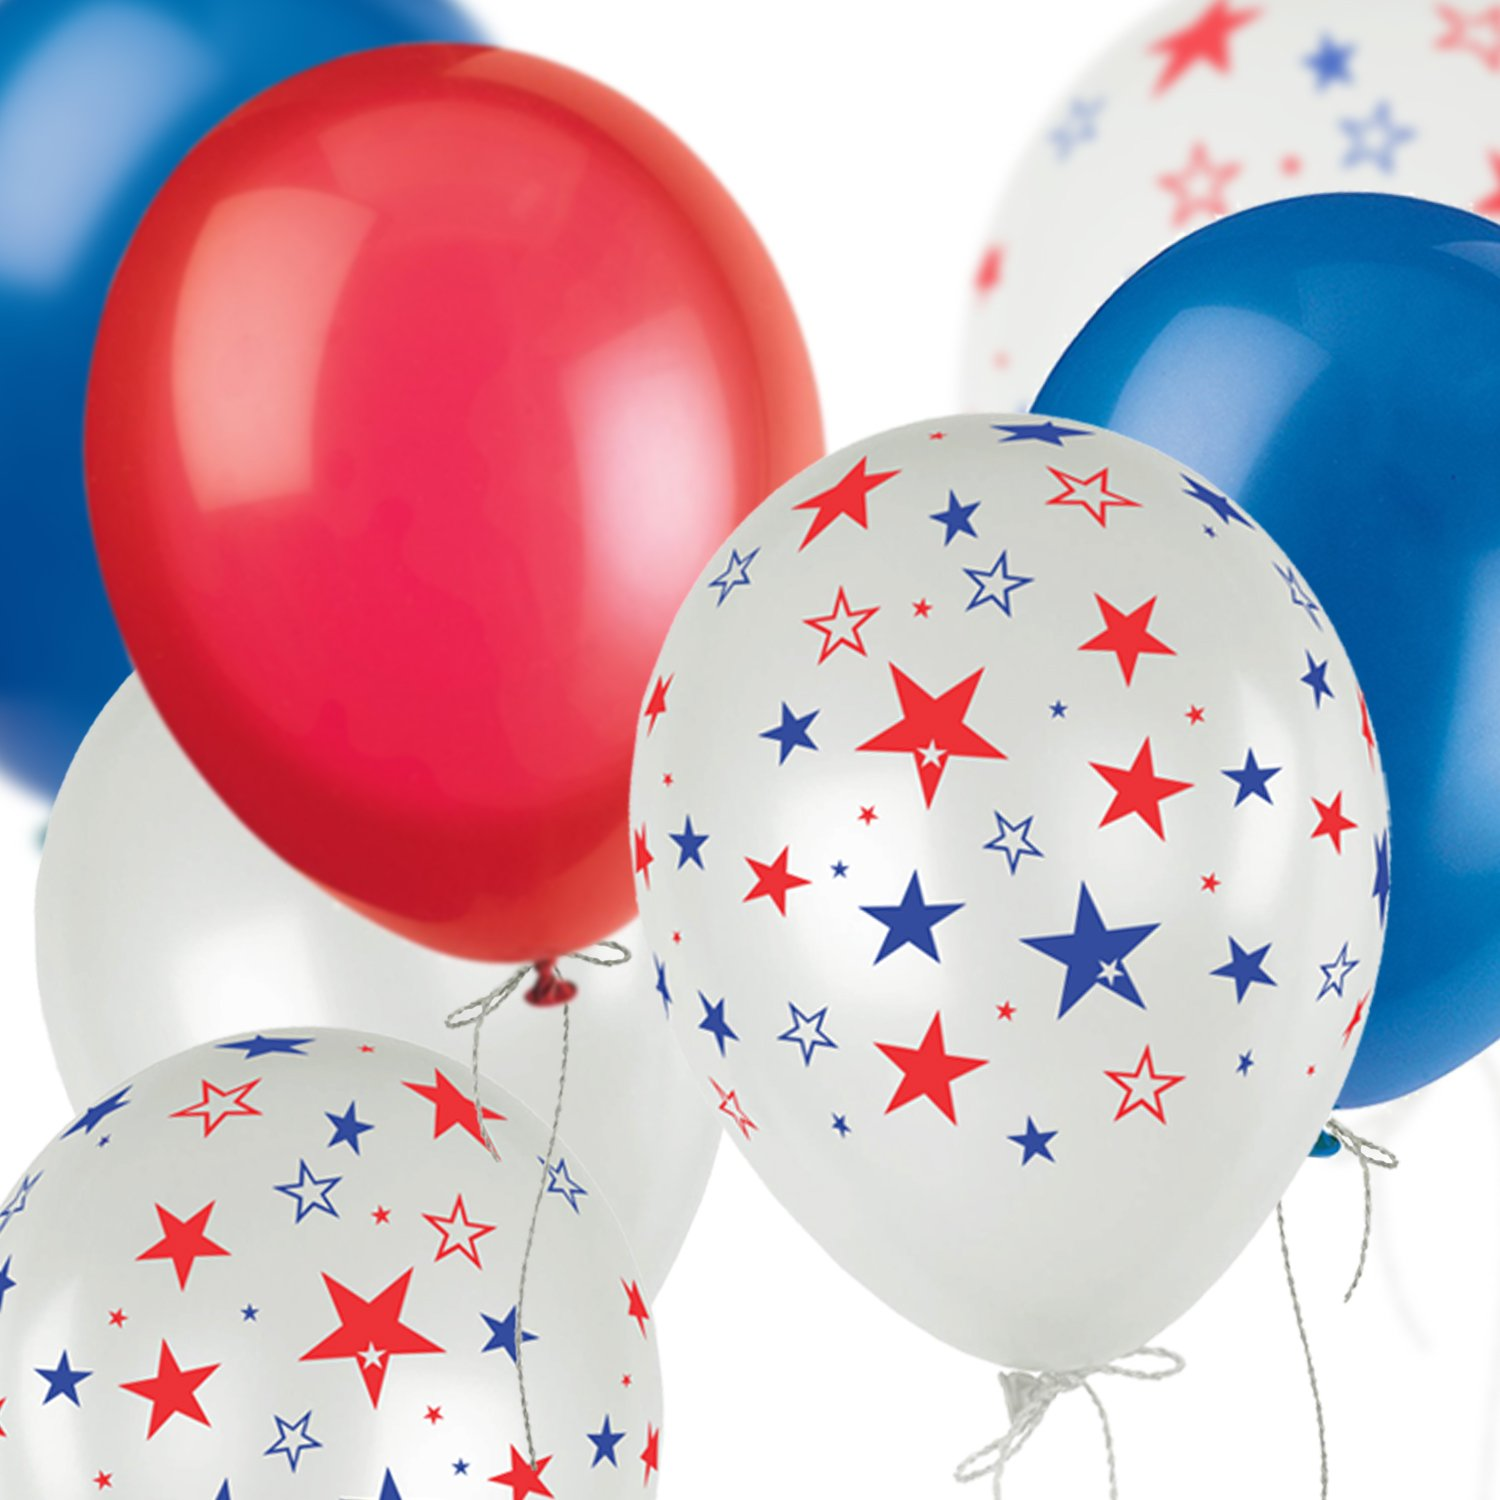 Patriotic Party Supplies, Fourth of July Decorations | White, Red, Blue Latex Balloons Assortment to Celebrate 4th of July, 100 Pieces | Perfect for Home Decor, Events, Independence Day Theme Parties